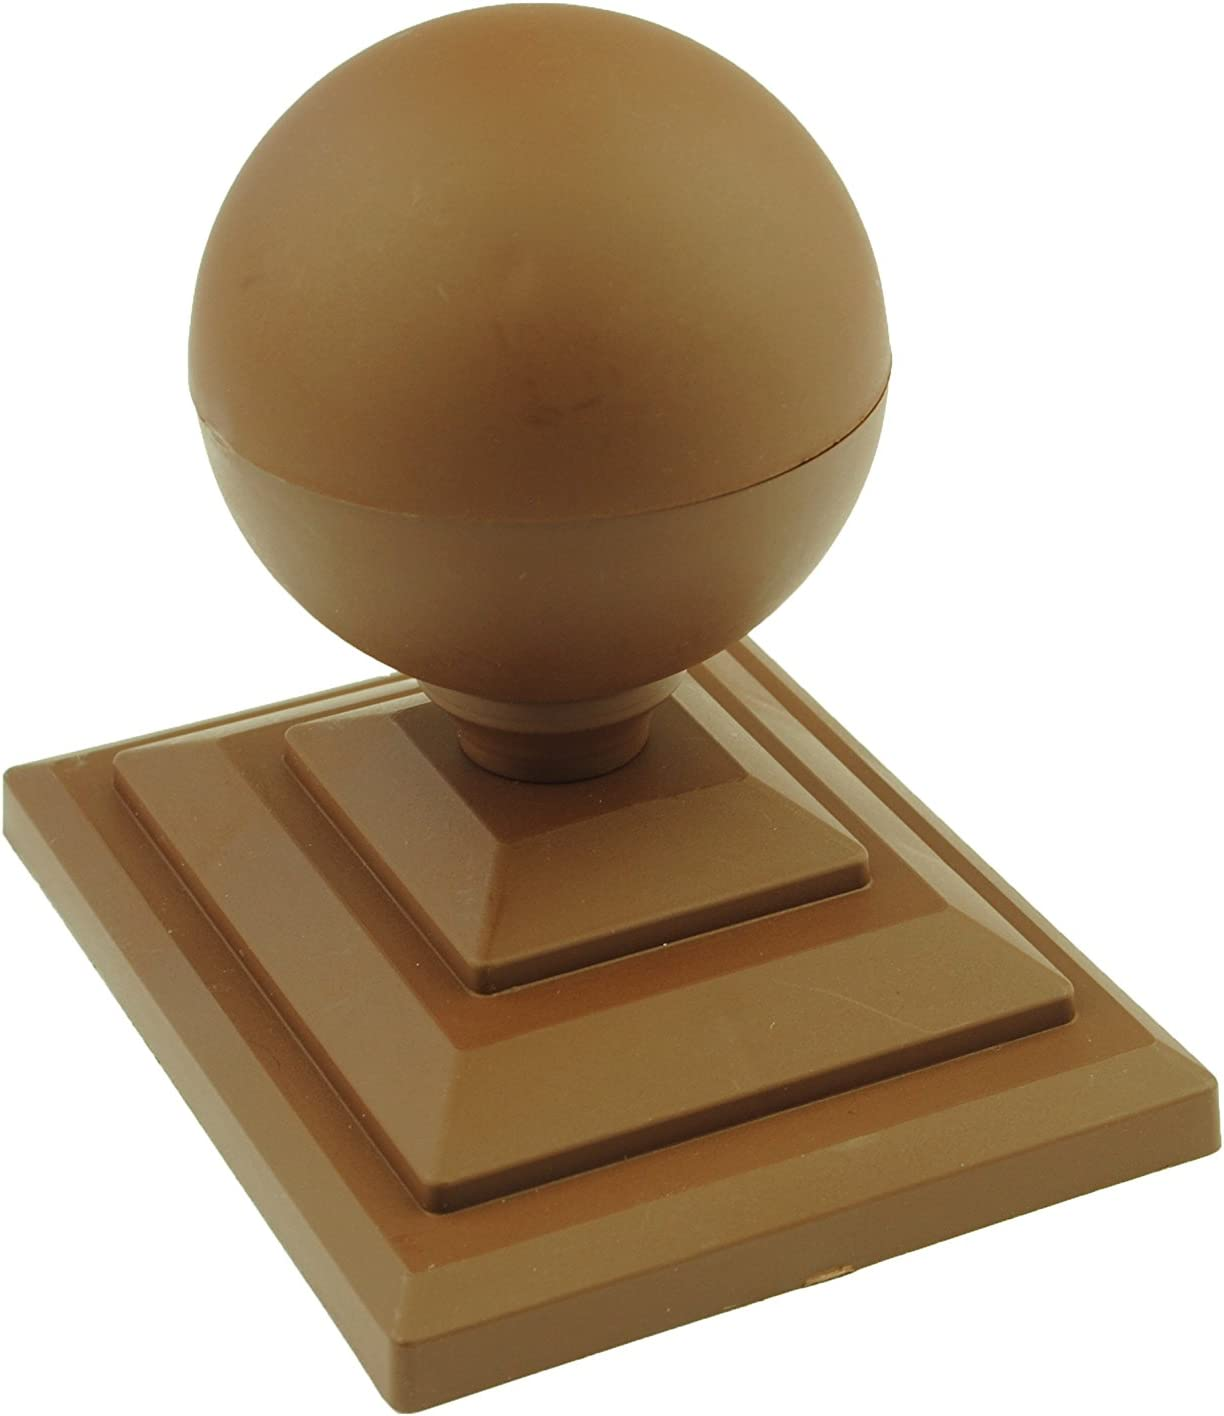 UK Made GT0033 Free UK Postage 4 x Linic White Sphere Top Fence Finials /& 4 Fence Post Caps.